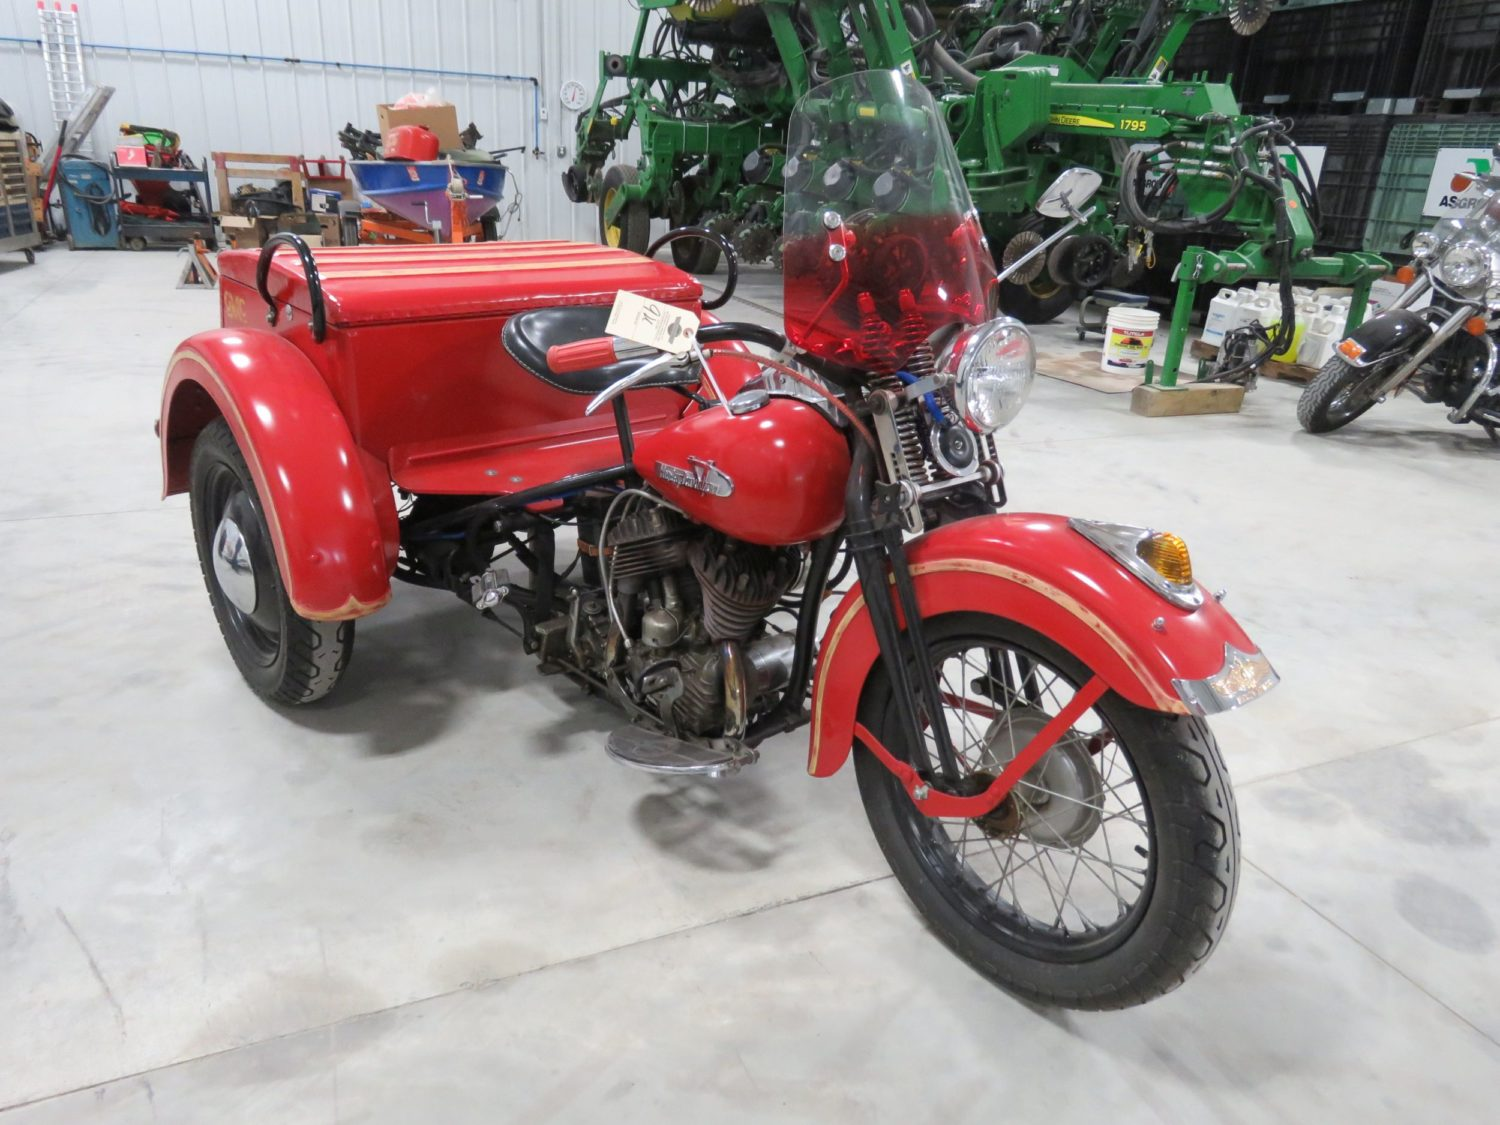 Vintage Motorcycles, & More! Kim Ferry Collection featured at Baxter Cycle Open House & Auction - image 1